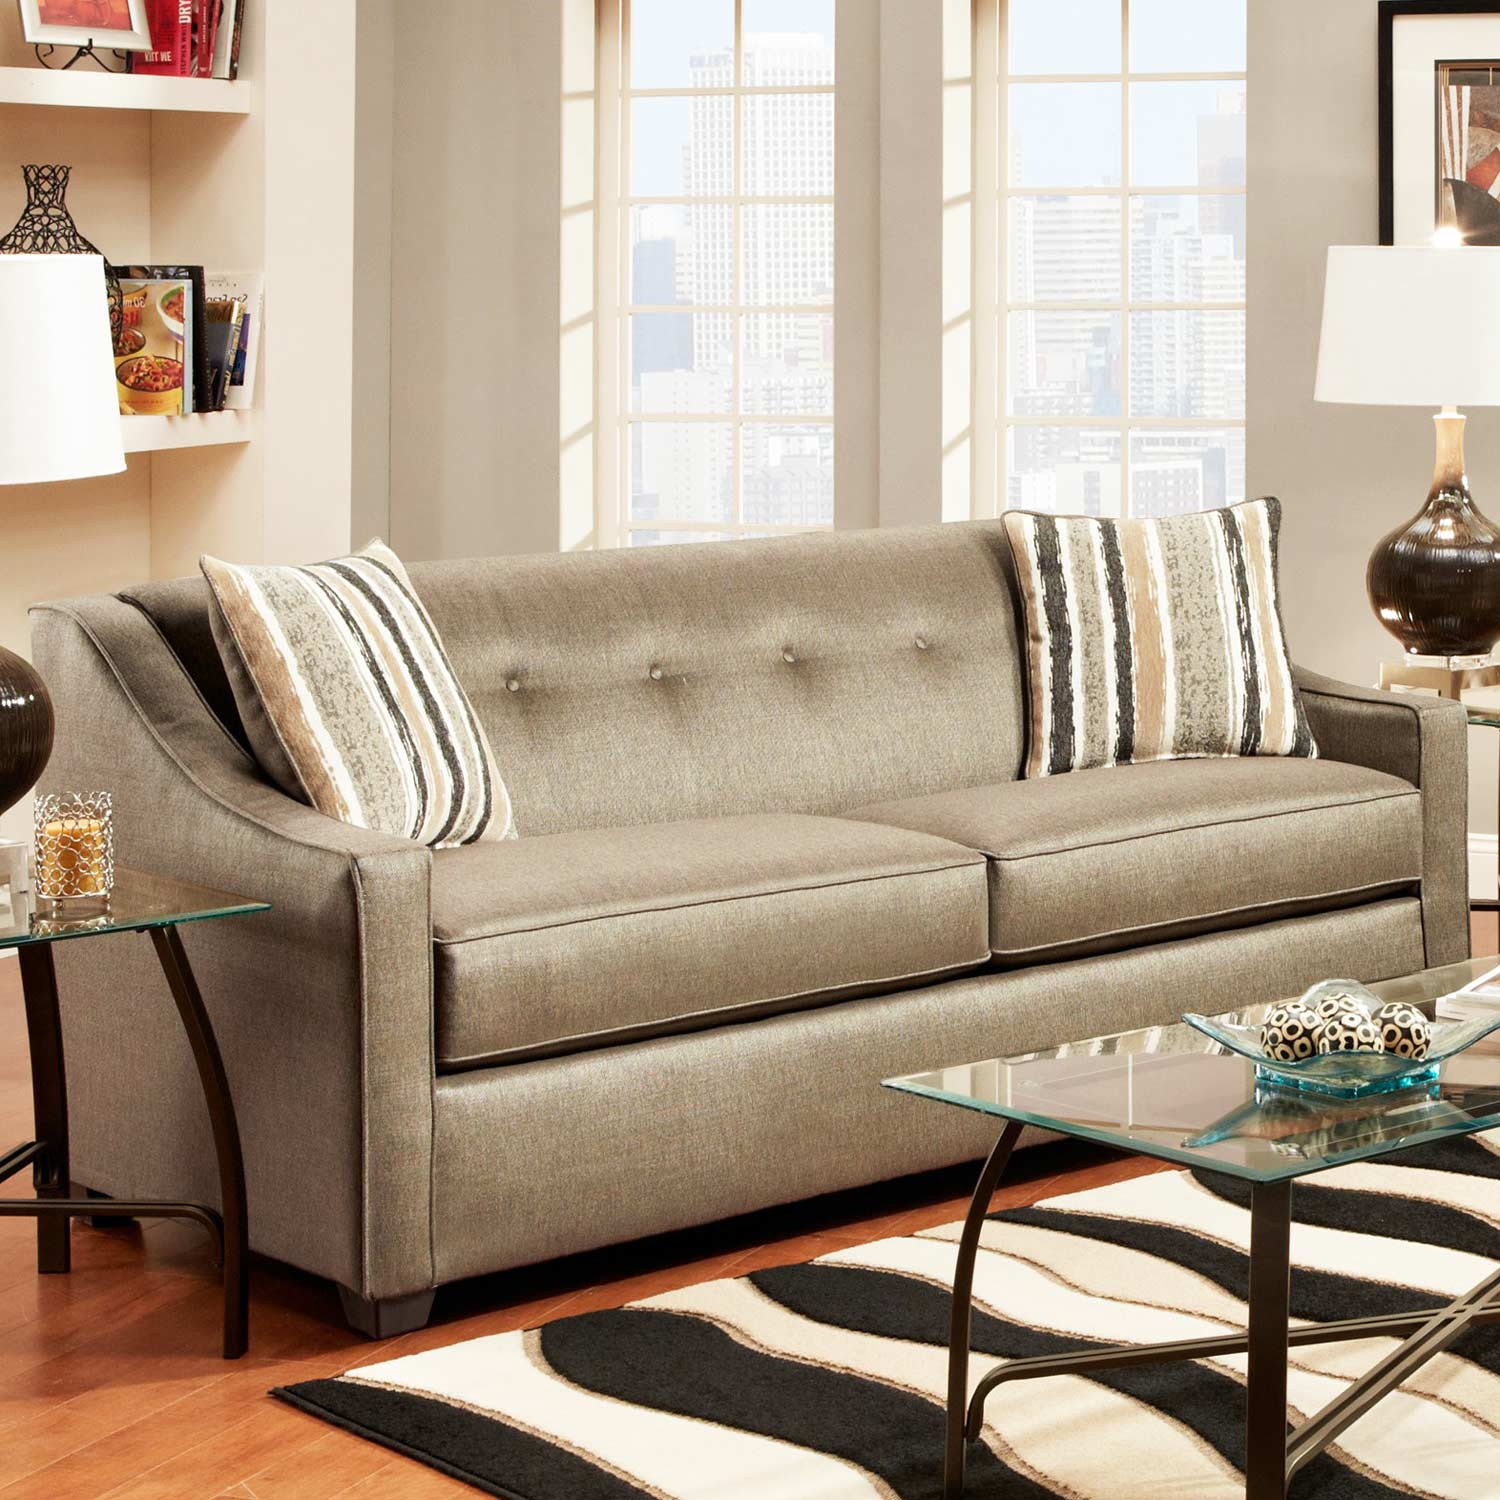 Brittany Sloped Arm Sofa - Buttons, Stoked Pewter Fabric